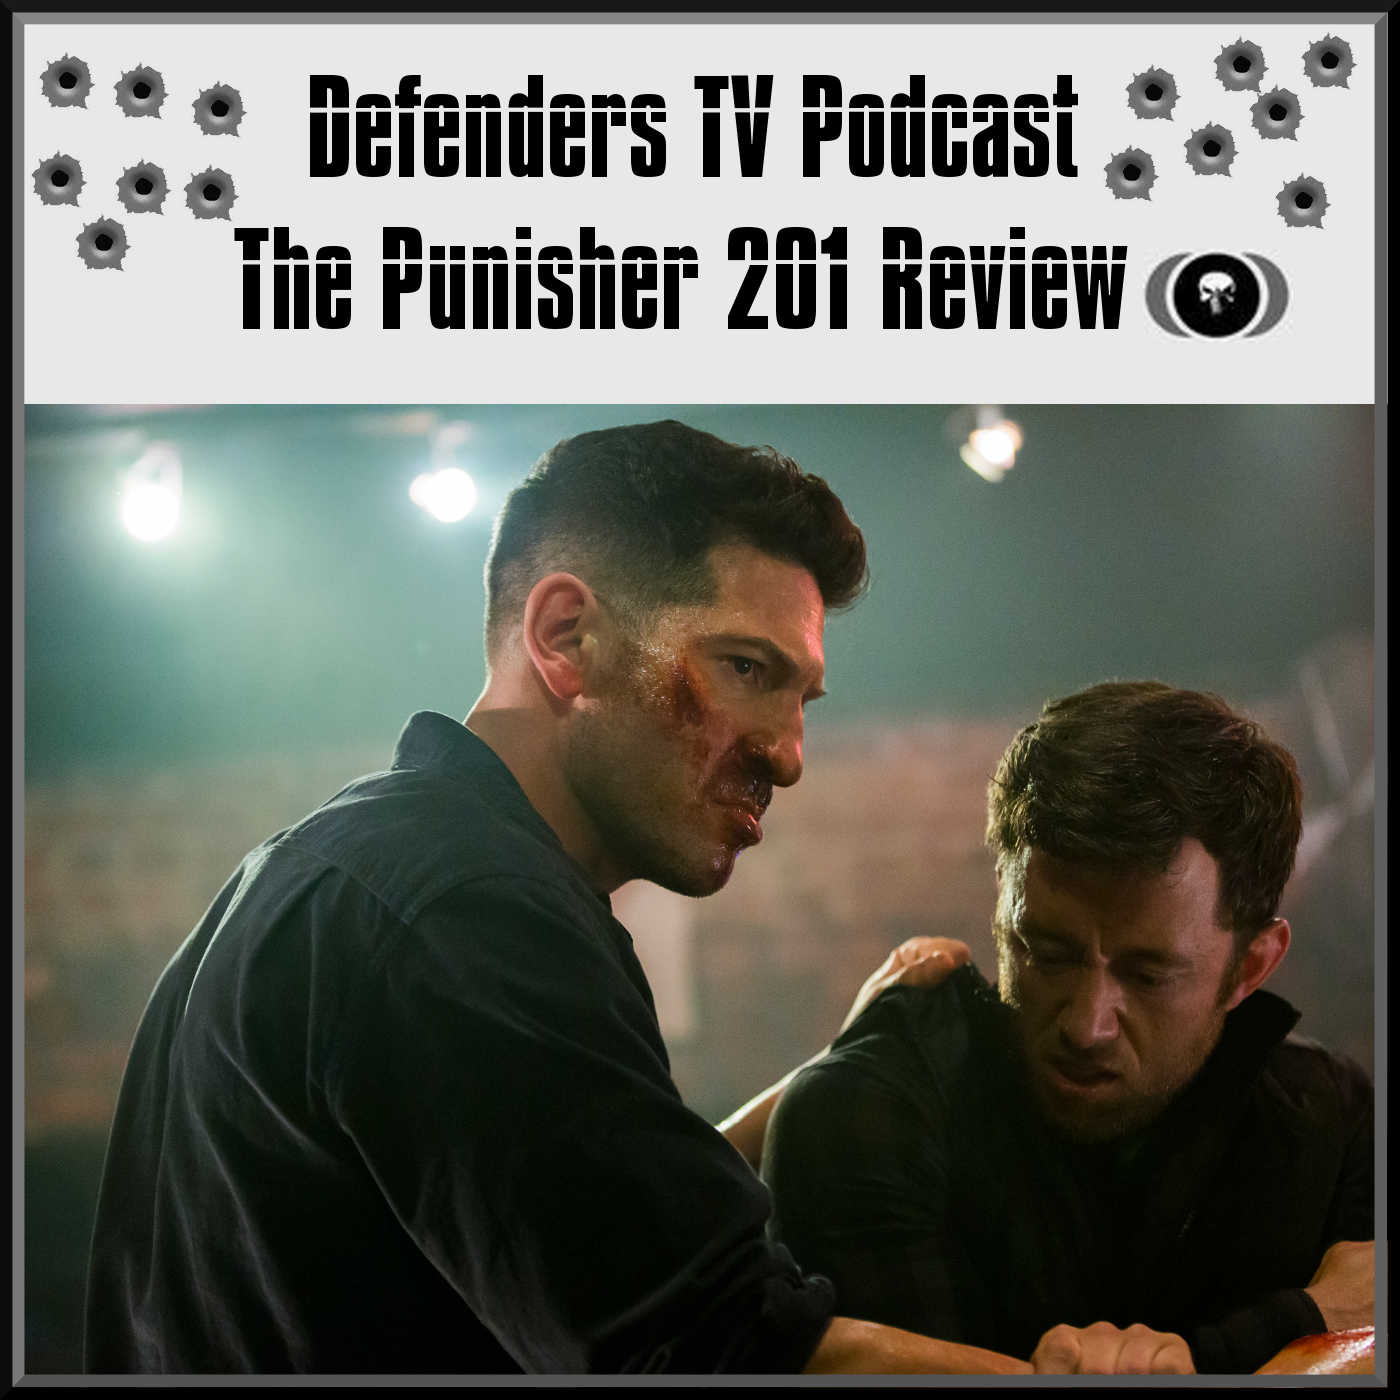 Punisher 201 Review